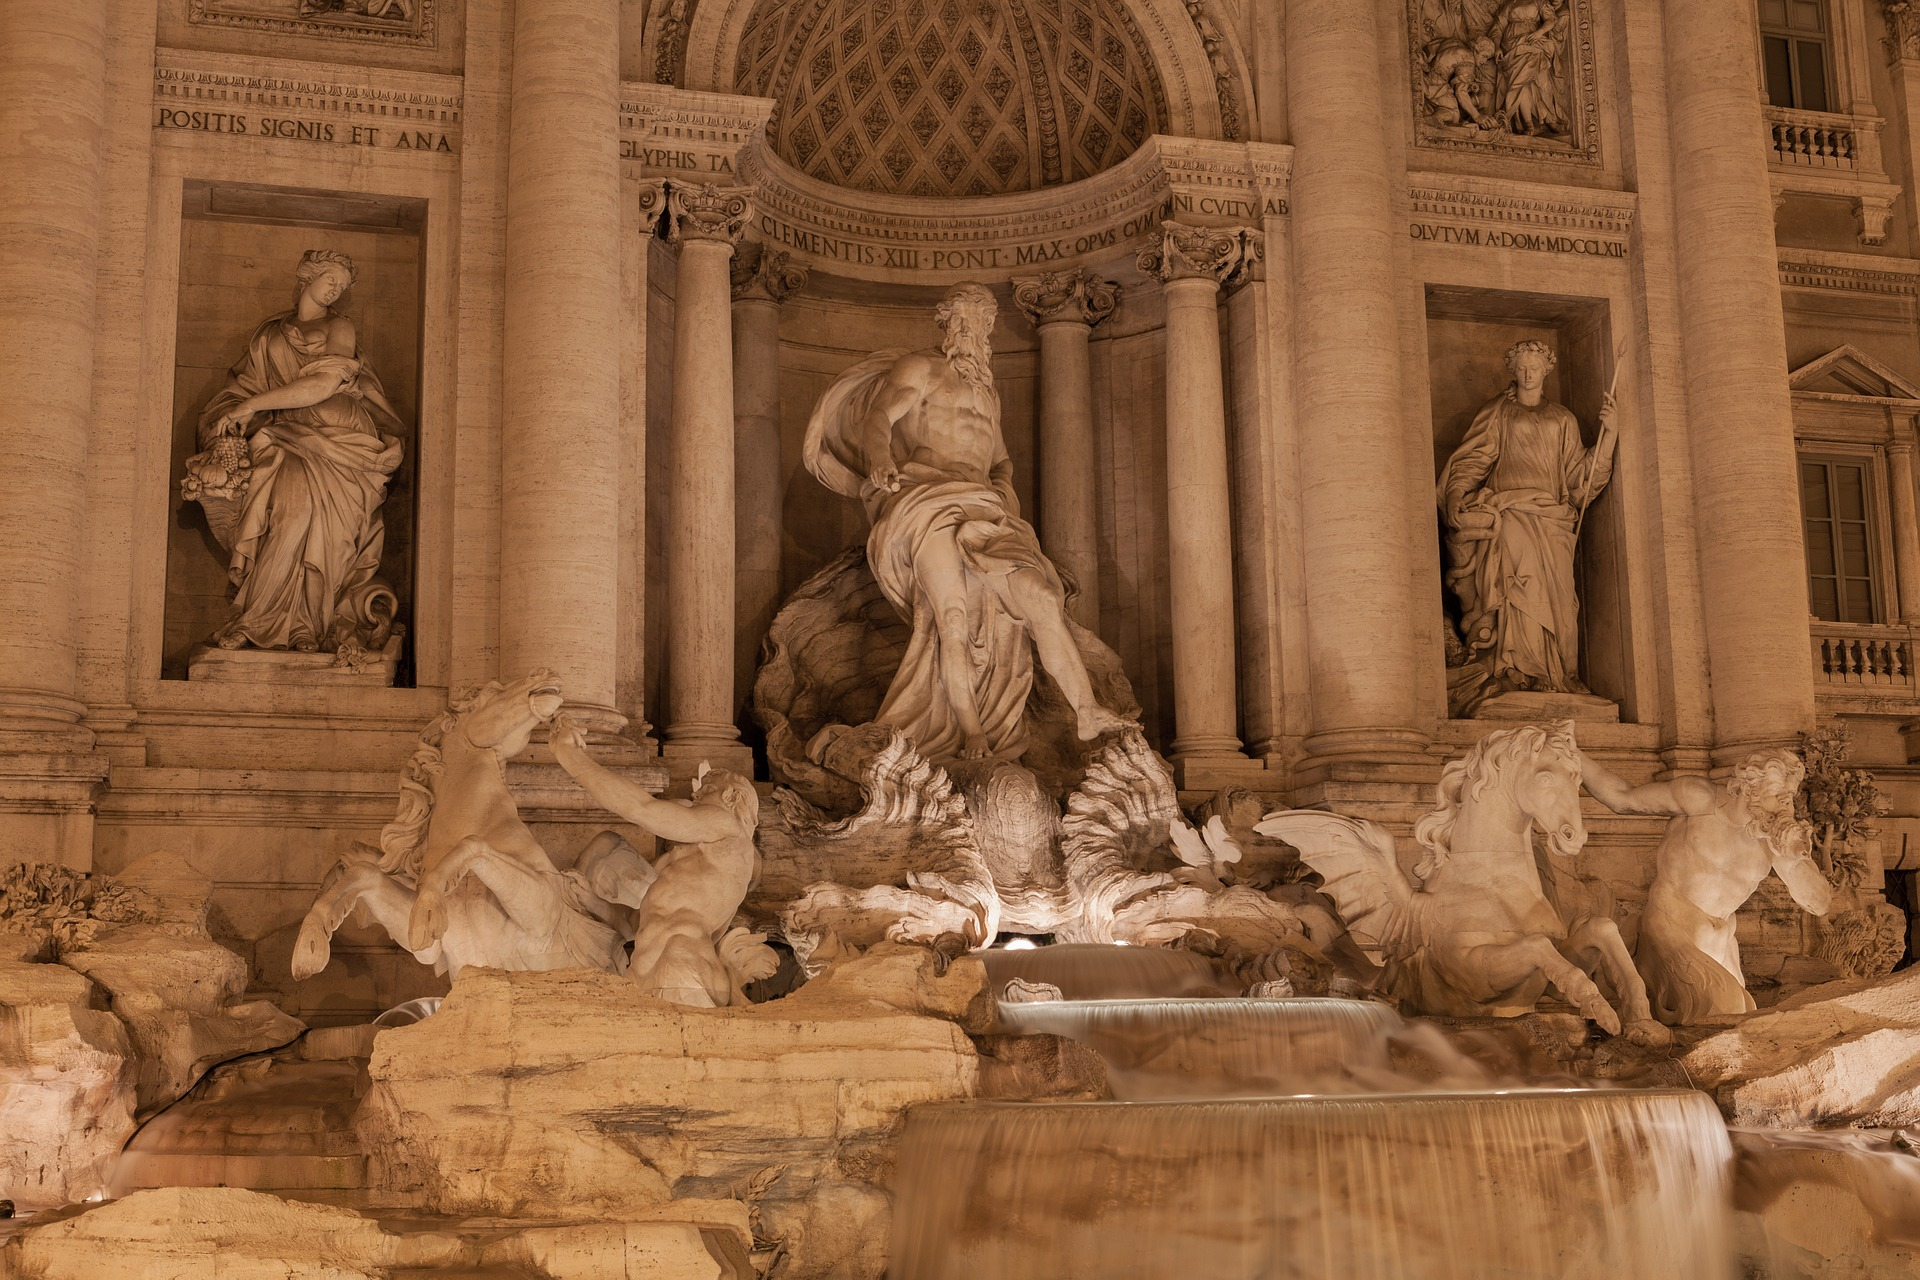 Tool transforms world landmark photos into 4D experiences